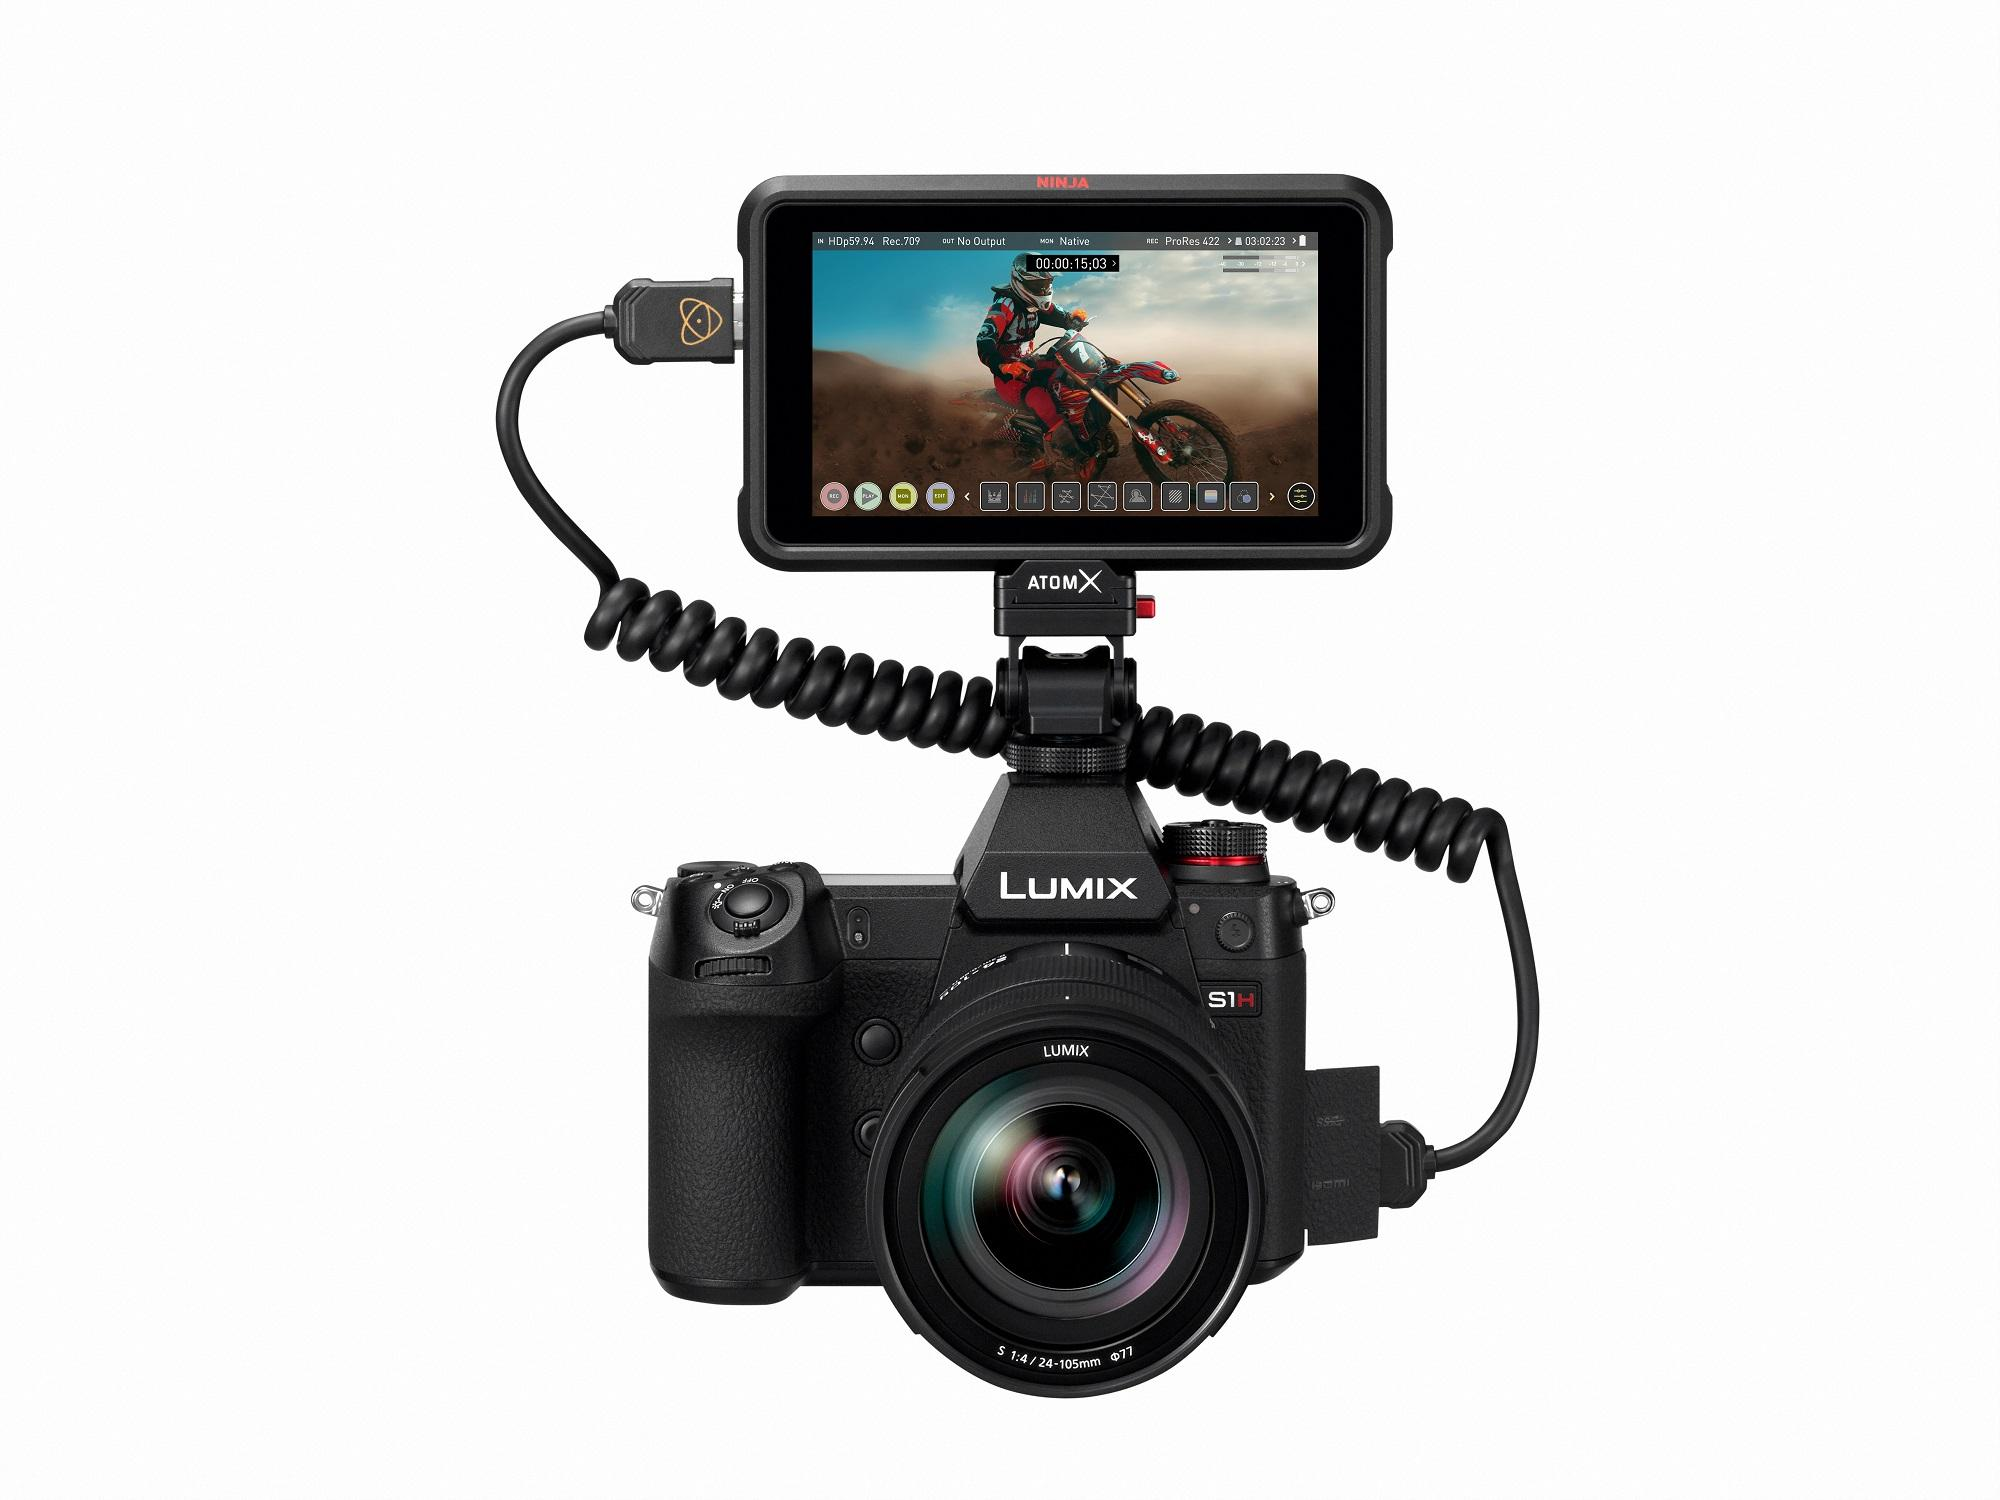 image: LUMIX S1H full-frame mirrorless camera with Atomos Ninja V 4K HDR monitor-recorder